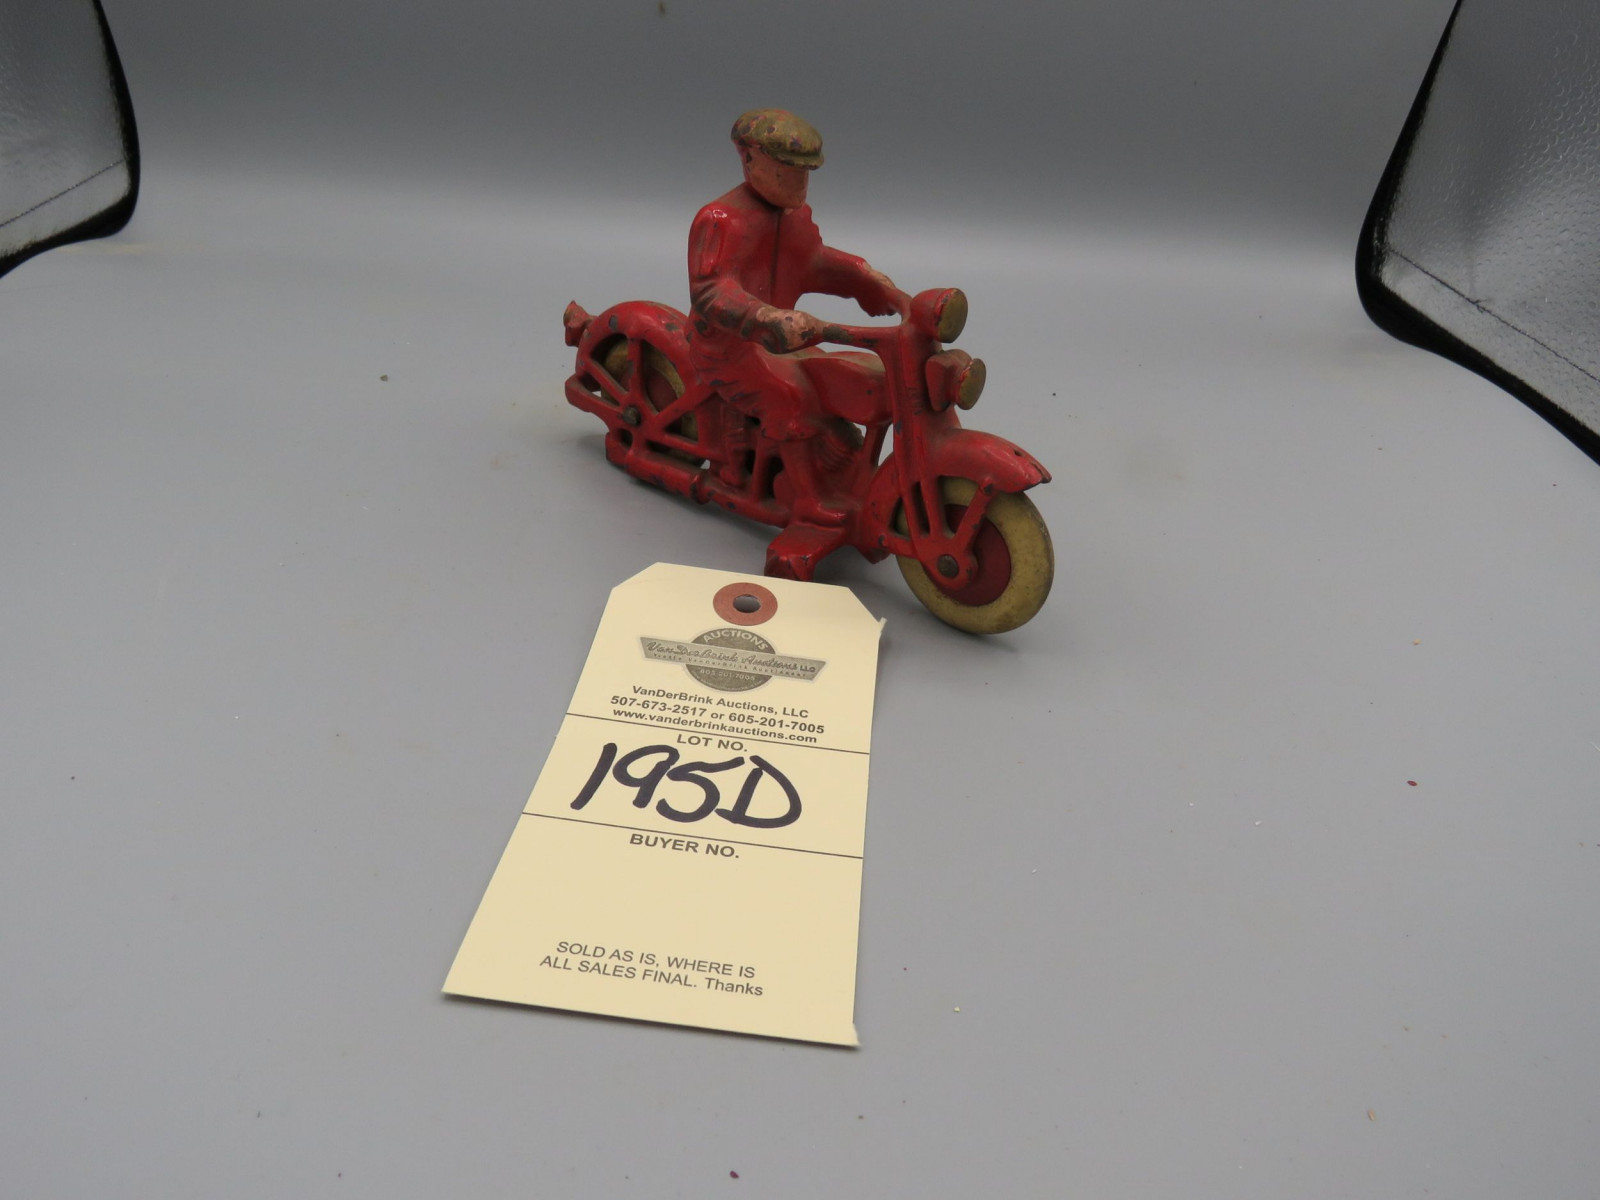 Hubley Motorcycle Cast Iron with Civilian Rider with Rubber Wheels Approx. 6 1/4 inches - Image 2